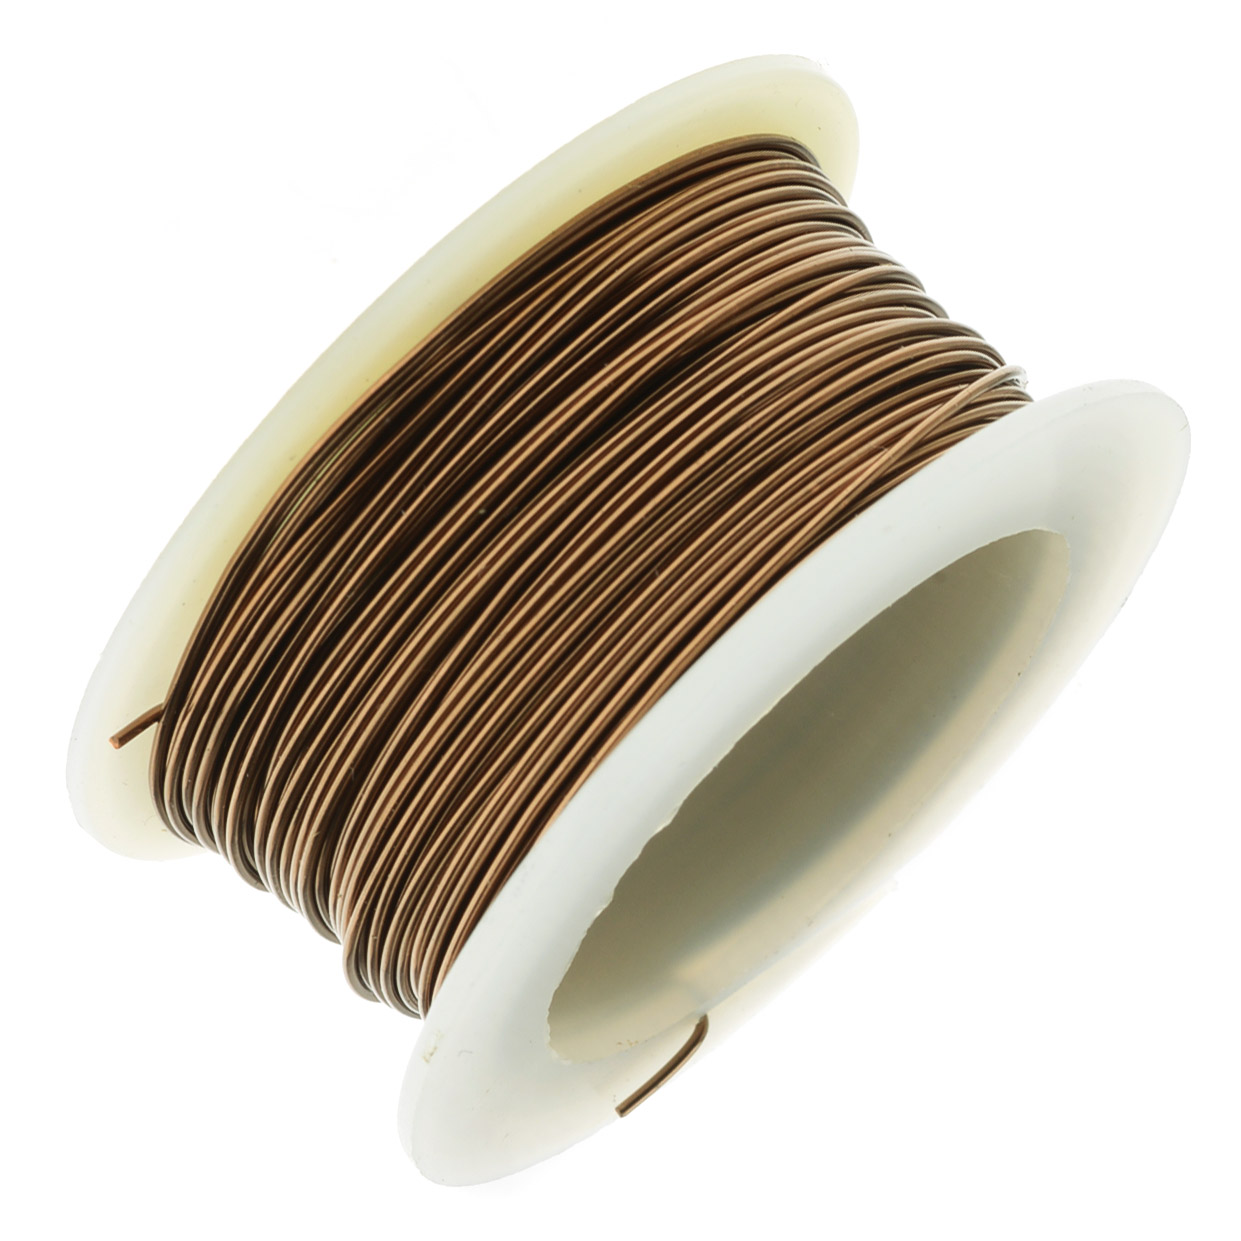 Artistic Wire, Copper Craft Wire 26 Gauge Thick, 15 Yard Spool, Antiqued Brass